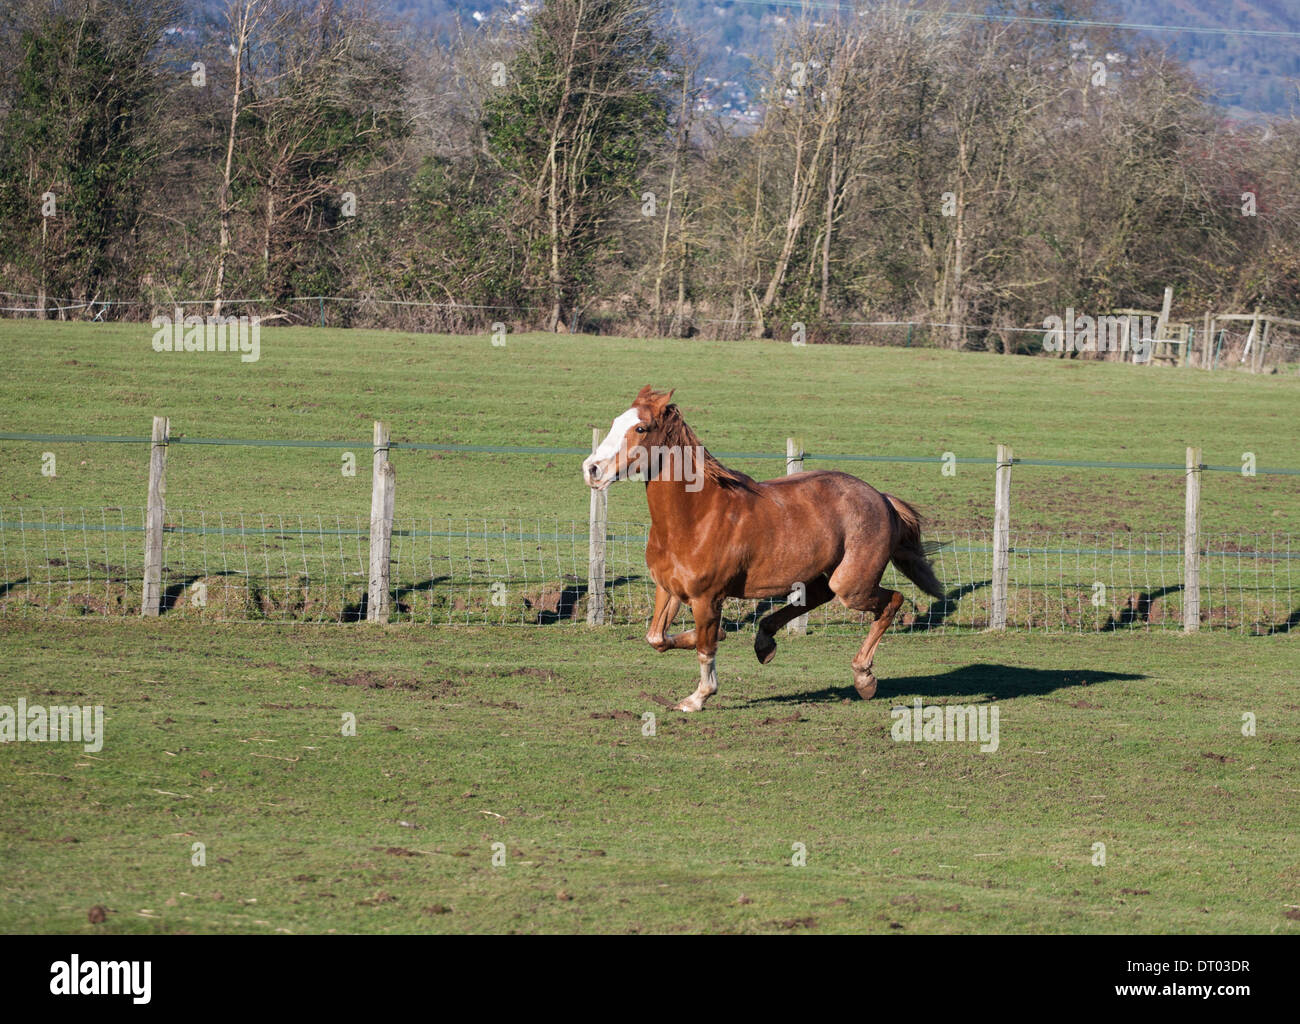 Brown Horse running free in field on a sunny day - Stock Image